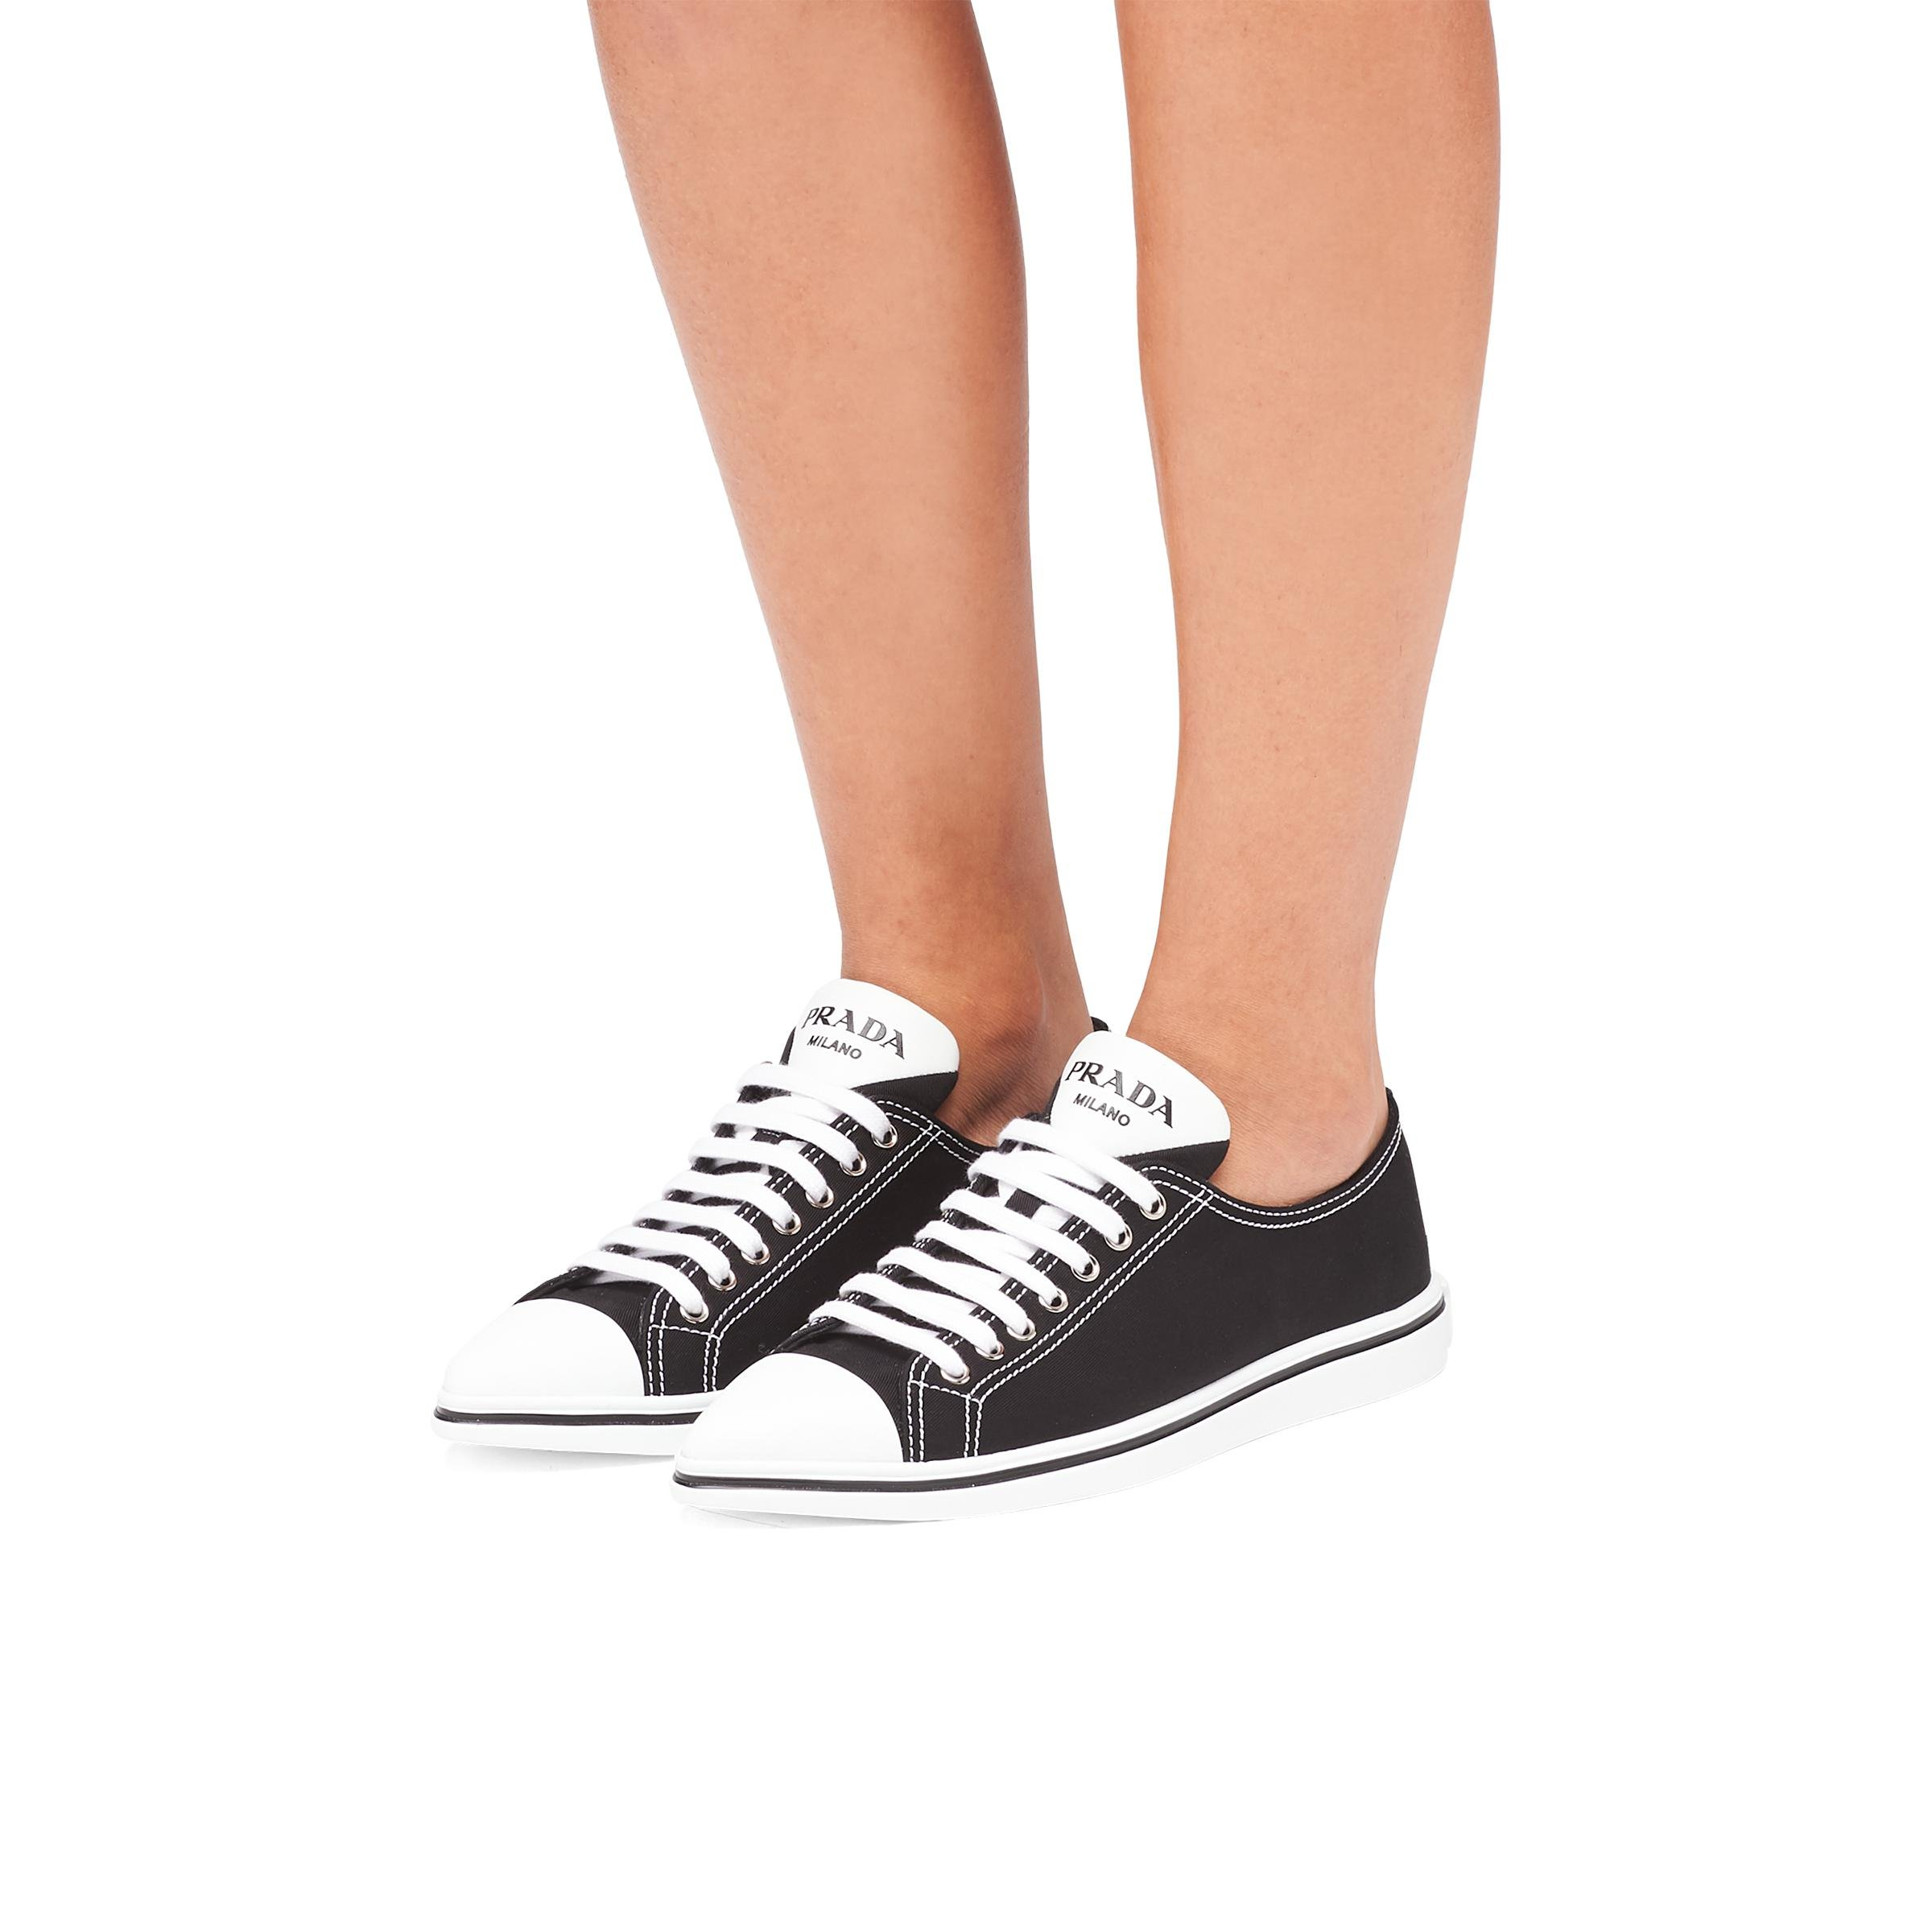 Synthesis Sneakers Women Black 4